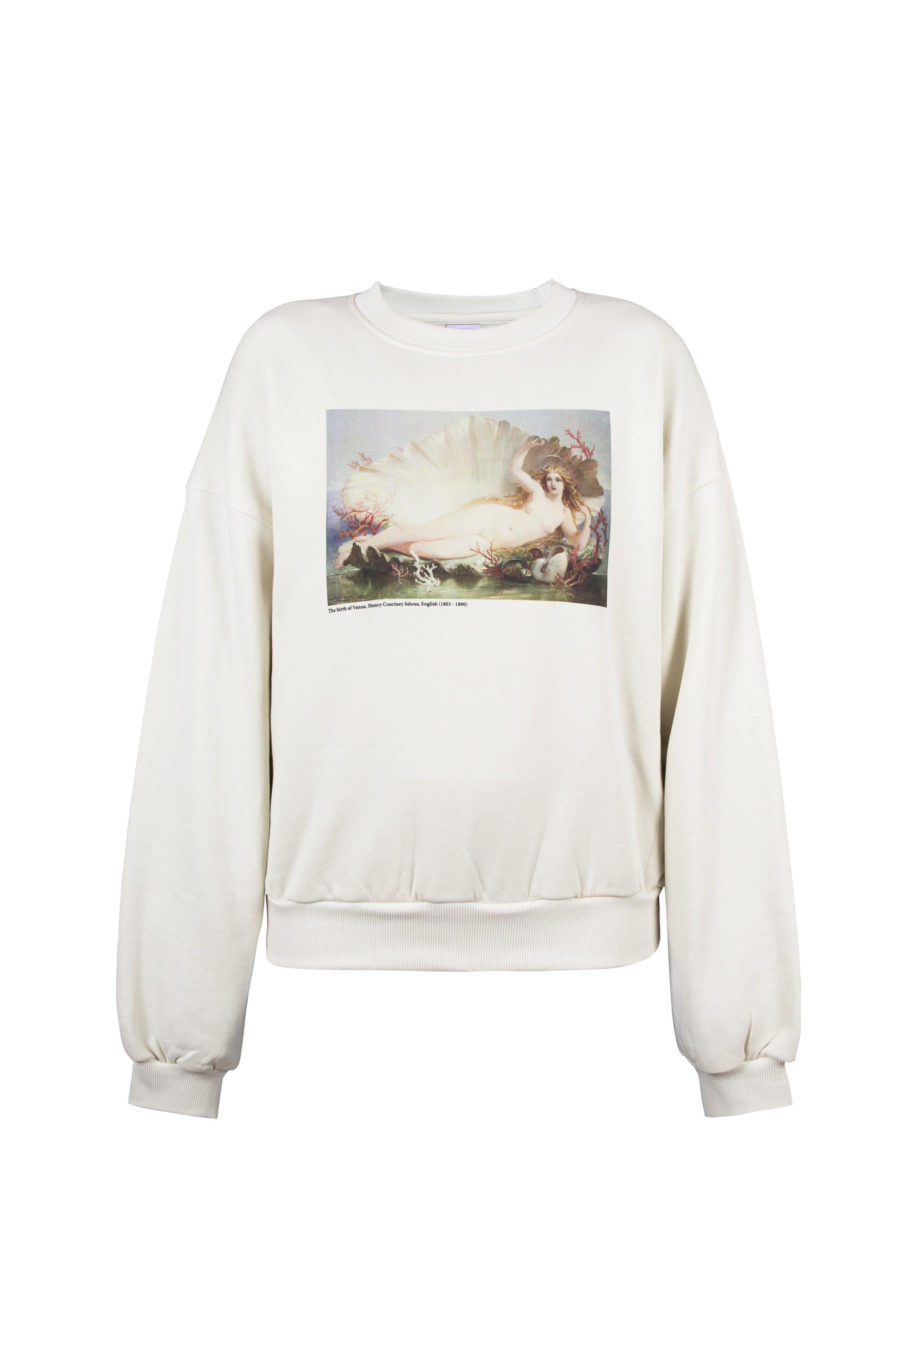 T.I.T.S. - Venus Sweater